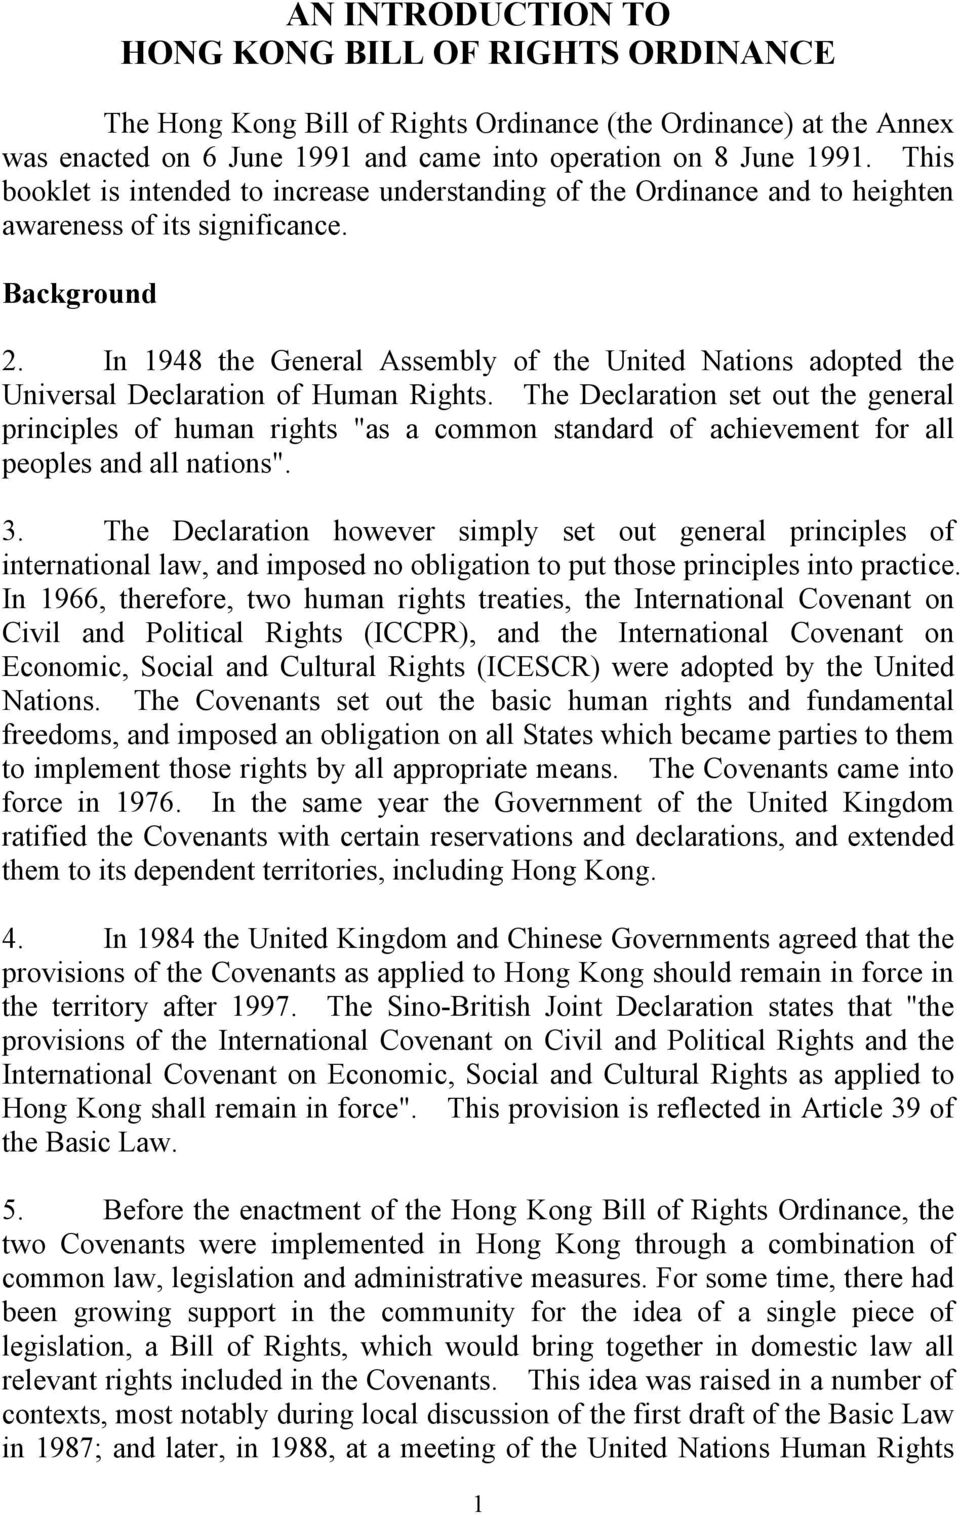 In 1948 the General Assembly of the United Nations adopted the Universal Declaration of Human Rights.